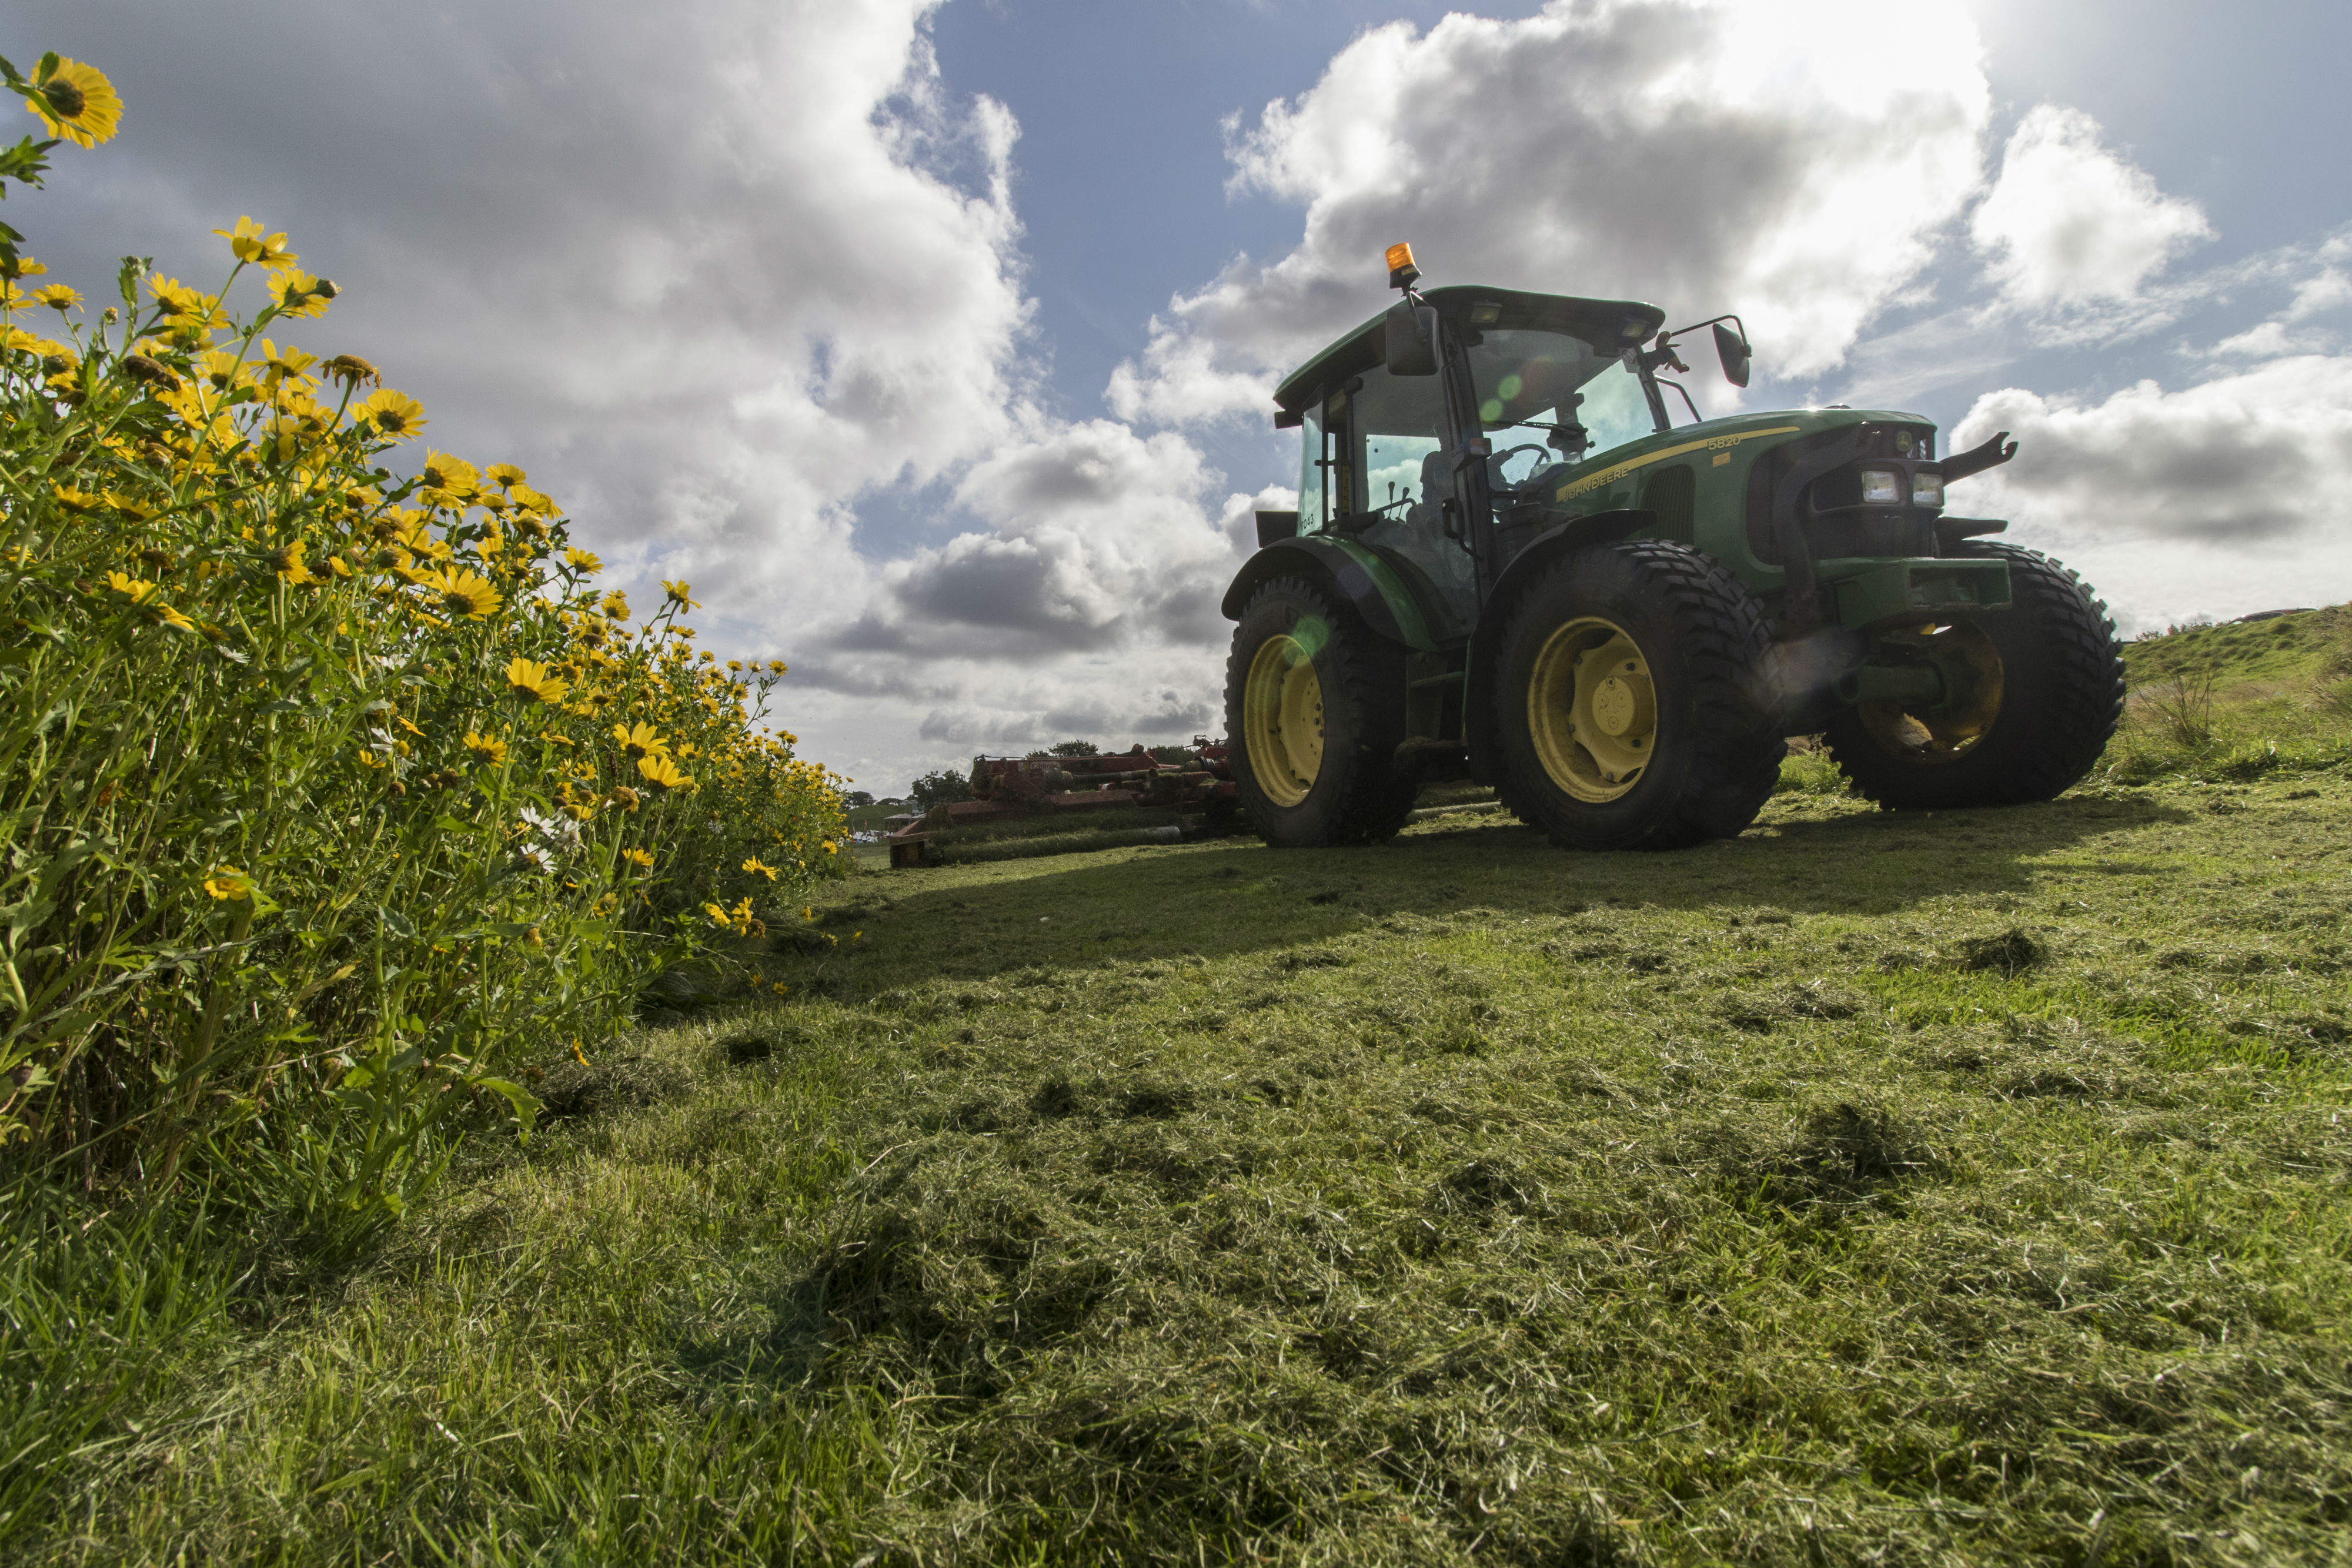 City of Edinburgh Council maintaining a wildflower meadow. Image by Barrie Williams.